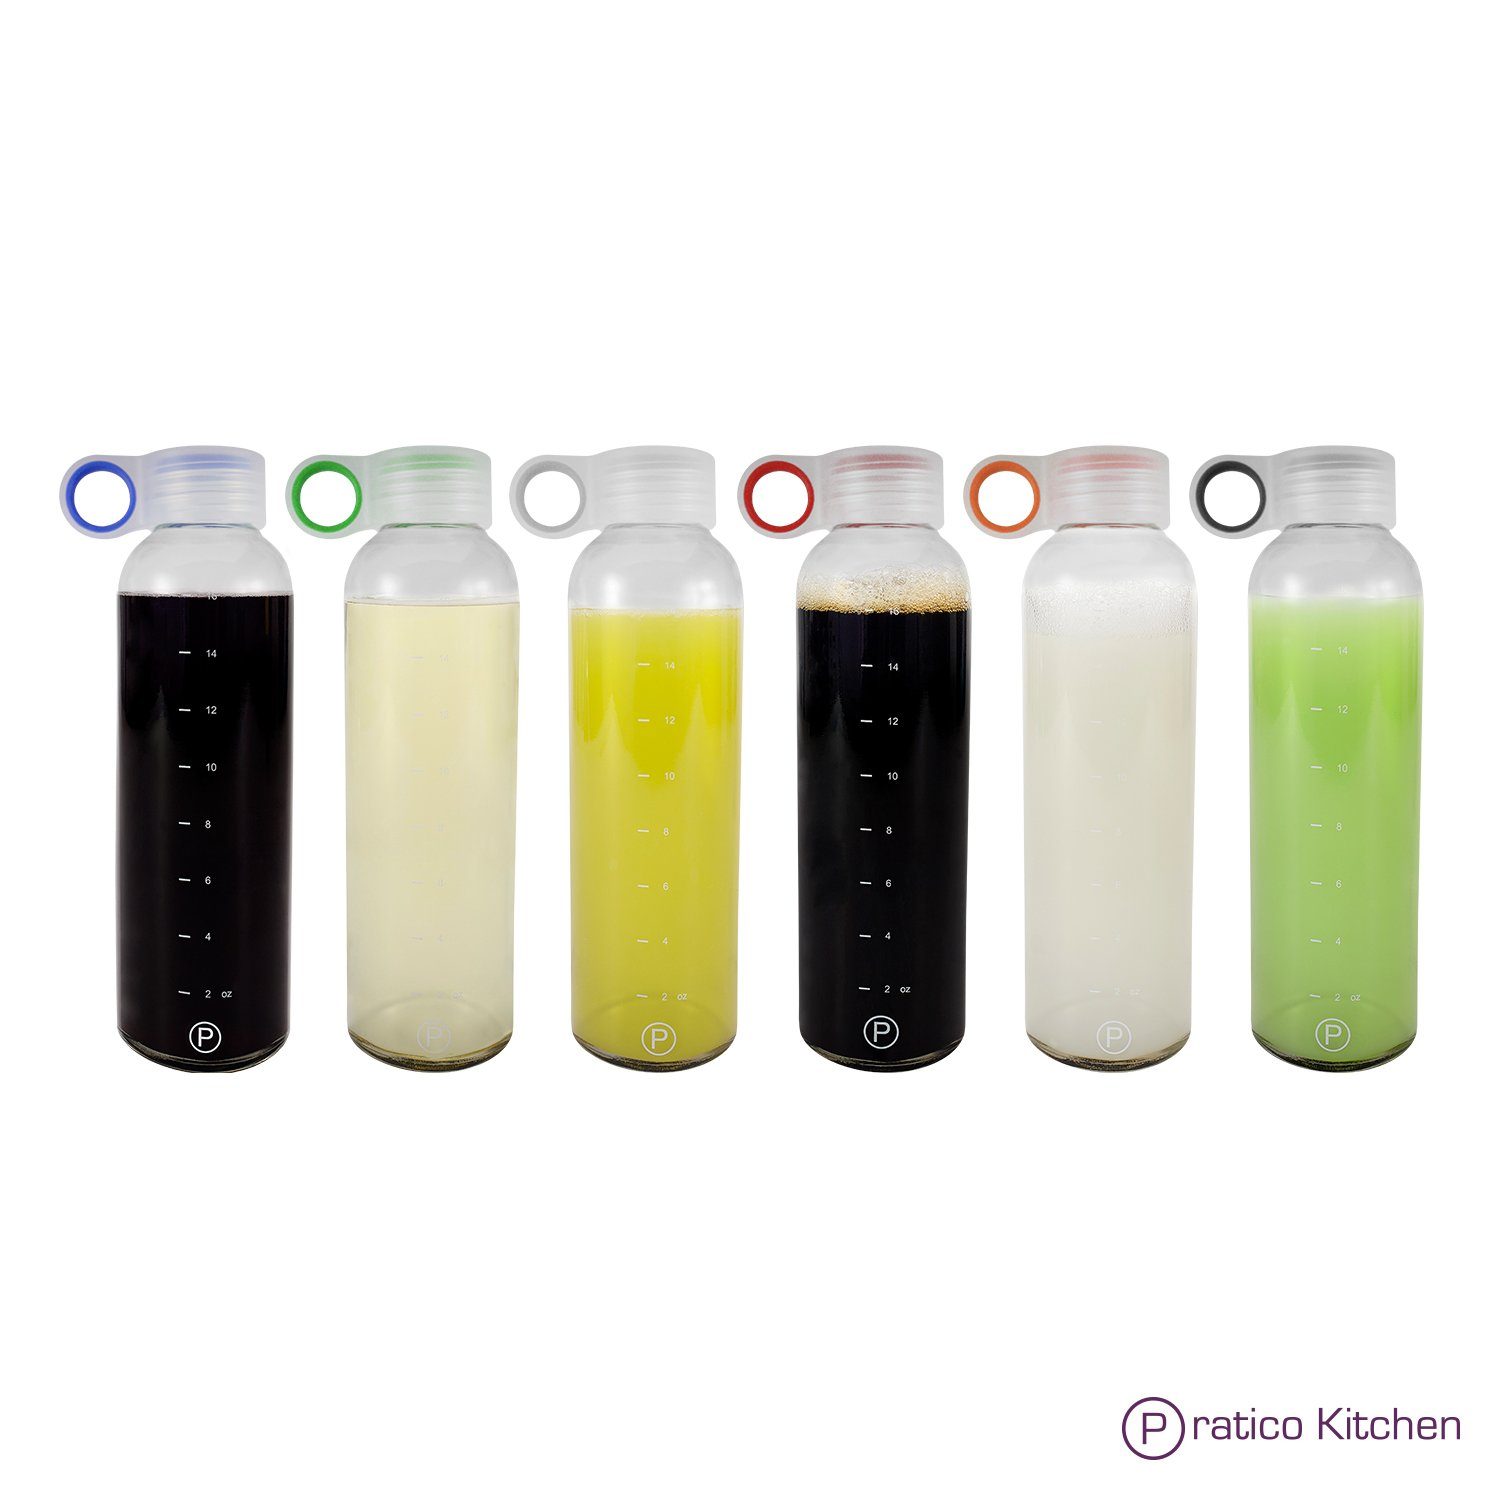 Pratico Kitchen 18oz Leak-Proof Glass Bottles, Juicing Containers, Water/Beverage Bottles - 6-Pack with Multi-Color Loop Caps by Pratico Kitchen (Image #1)